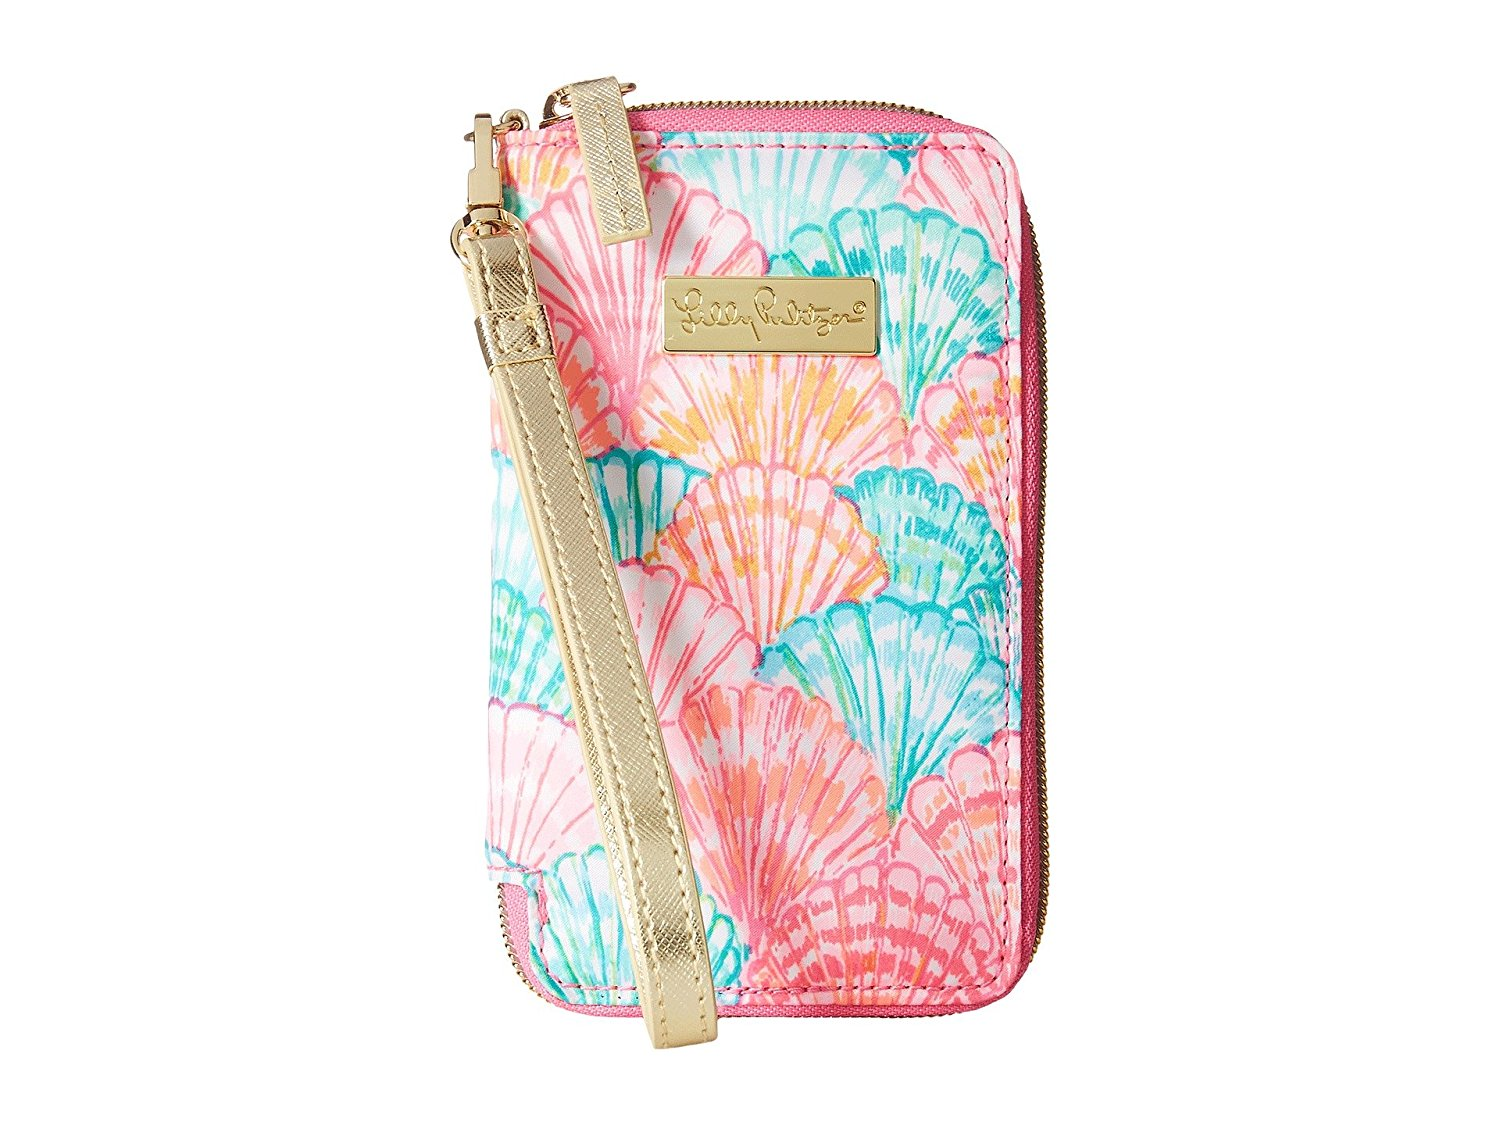 Enchanting Lilly Pulitzer Phone Case for Phone Accessories Ideas: Phi Mu Phone Cases | Lilly Pulitzer Cell Phone Case | Lilly Pulitzer Phone Case